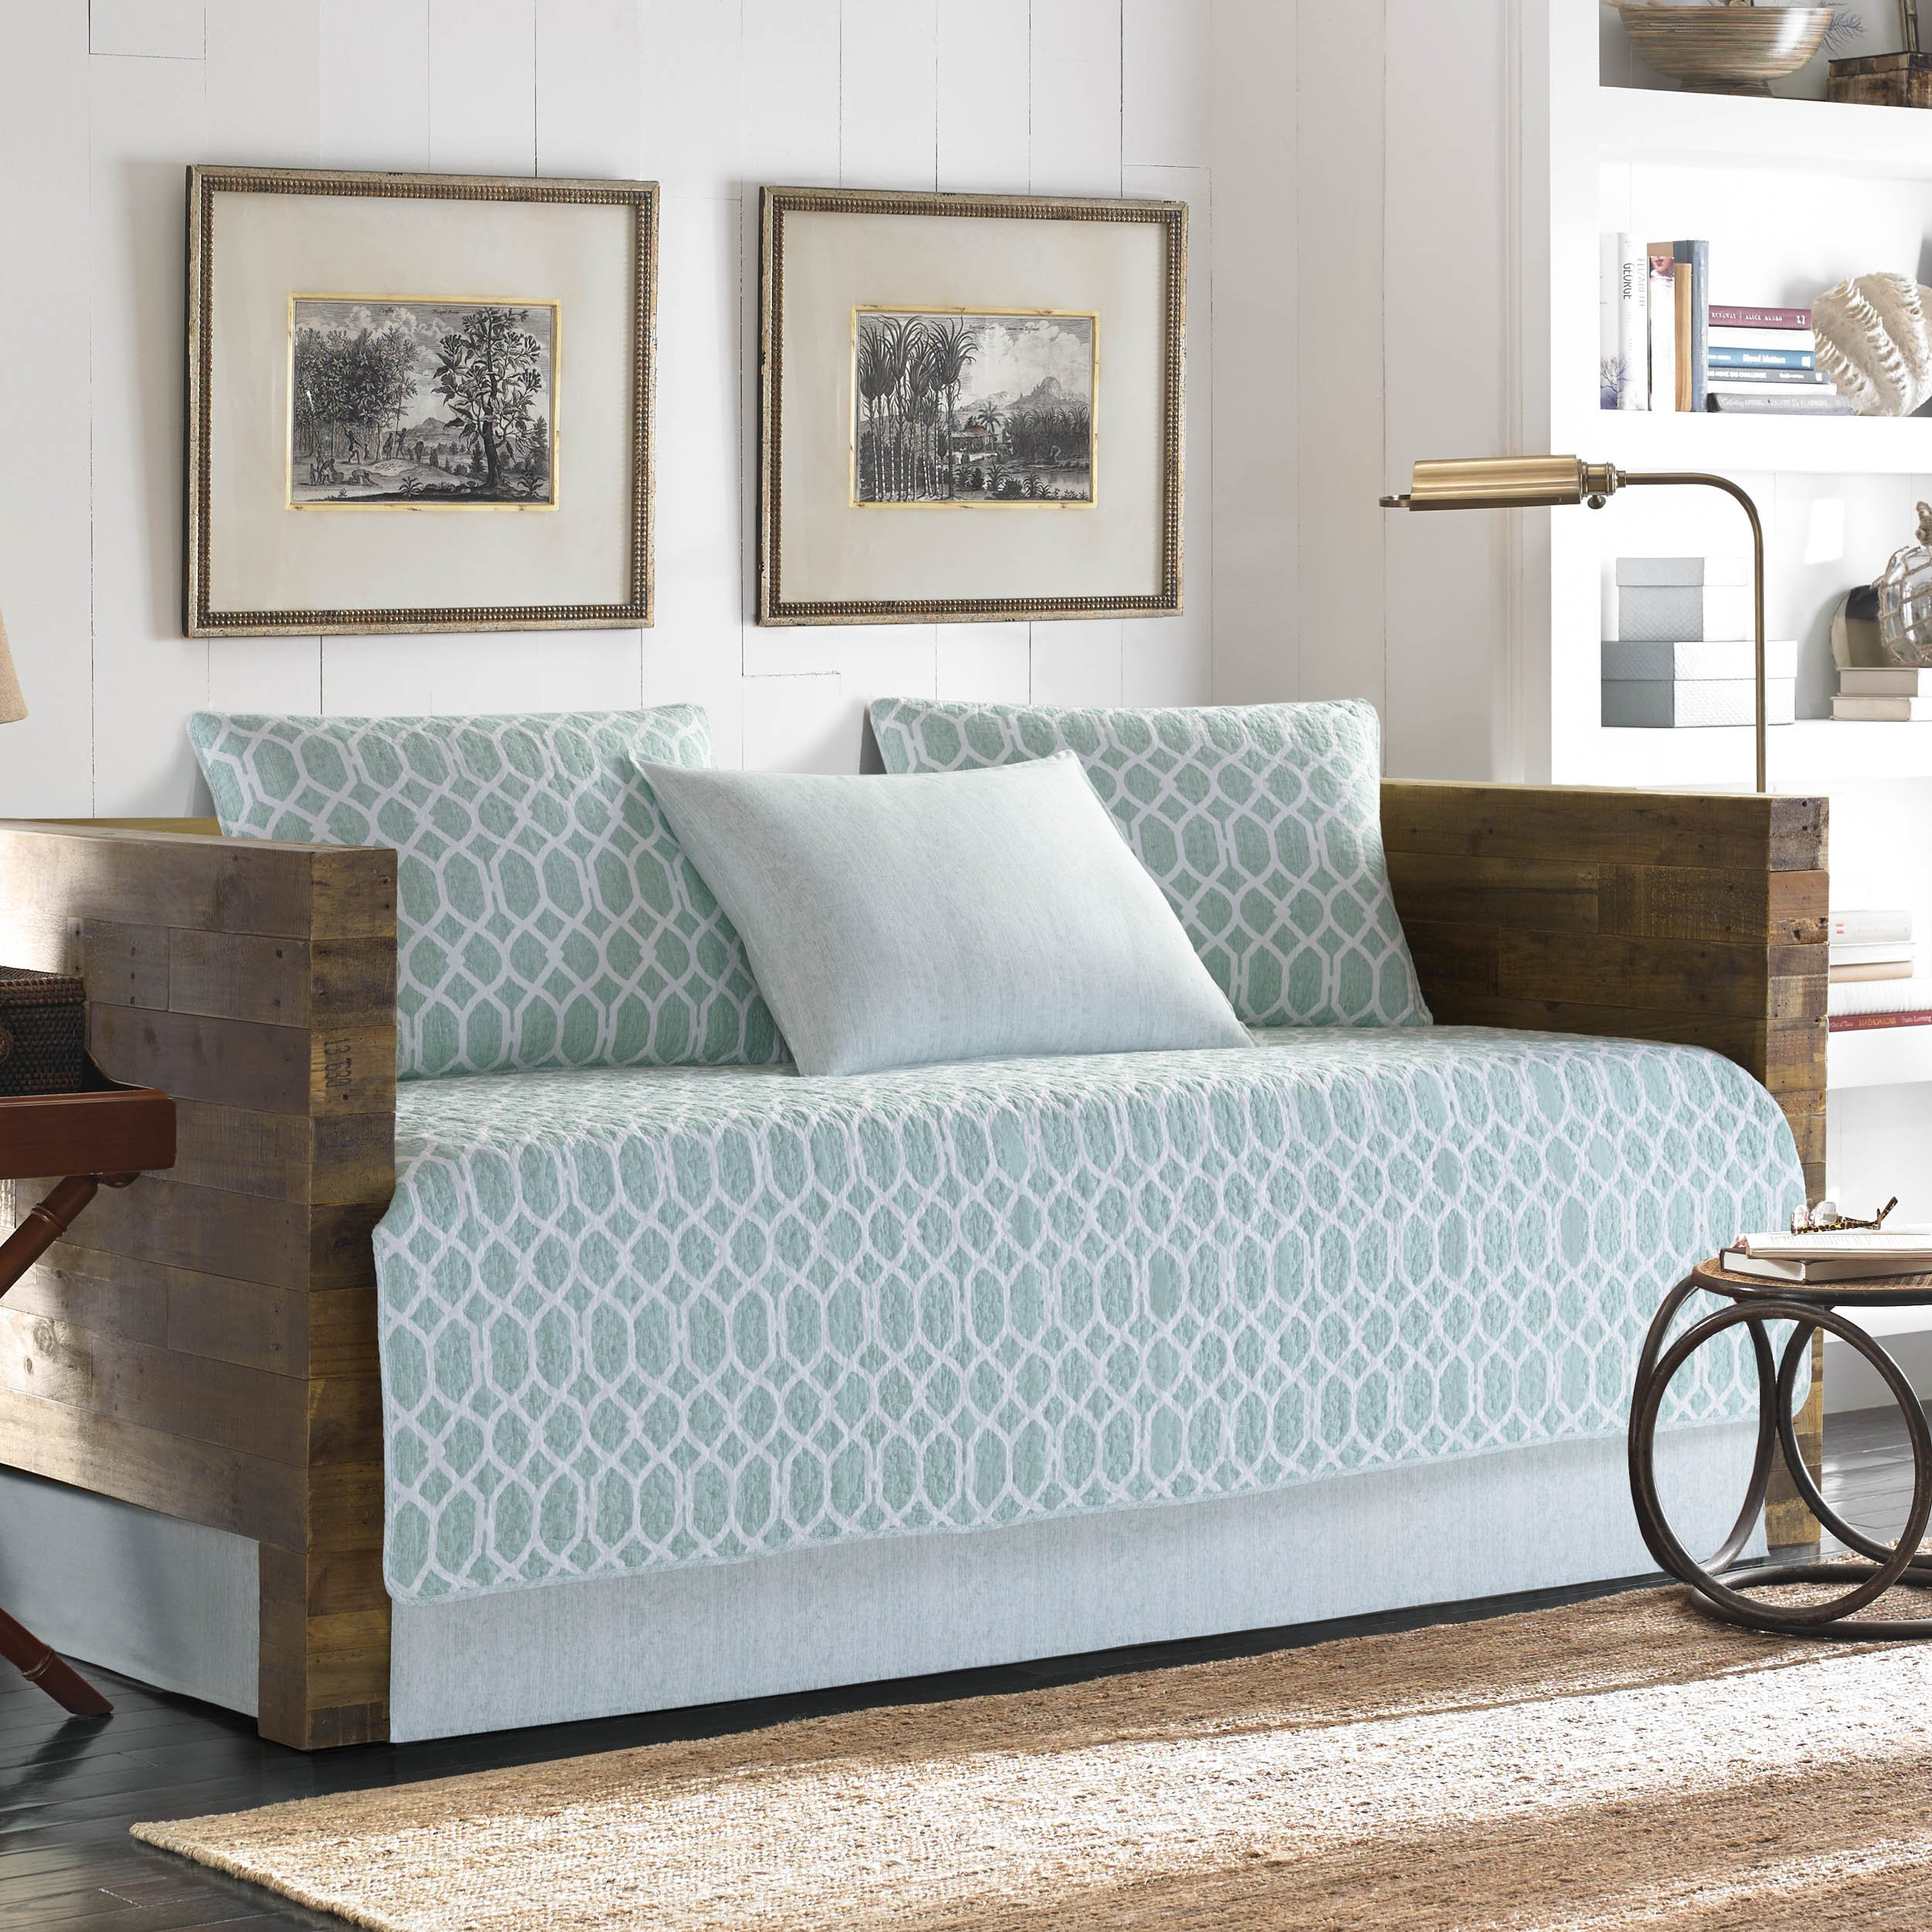 Tommy Bahama Catalina Trellis Daybed Cover Set, Twin, Light Pastel Blue